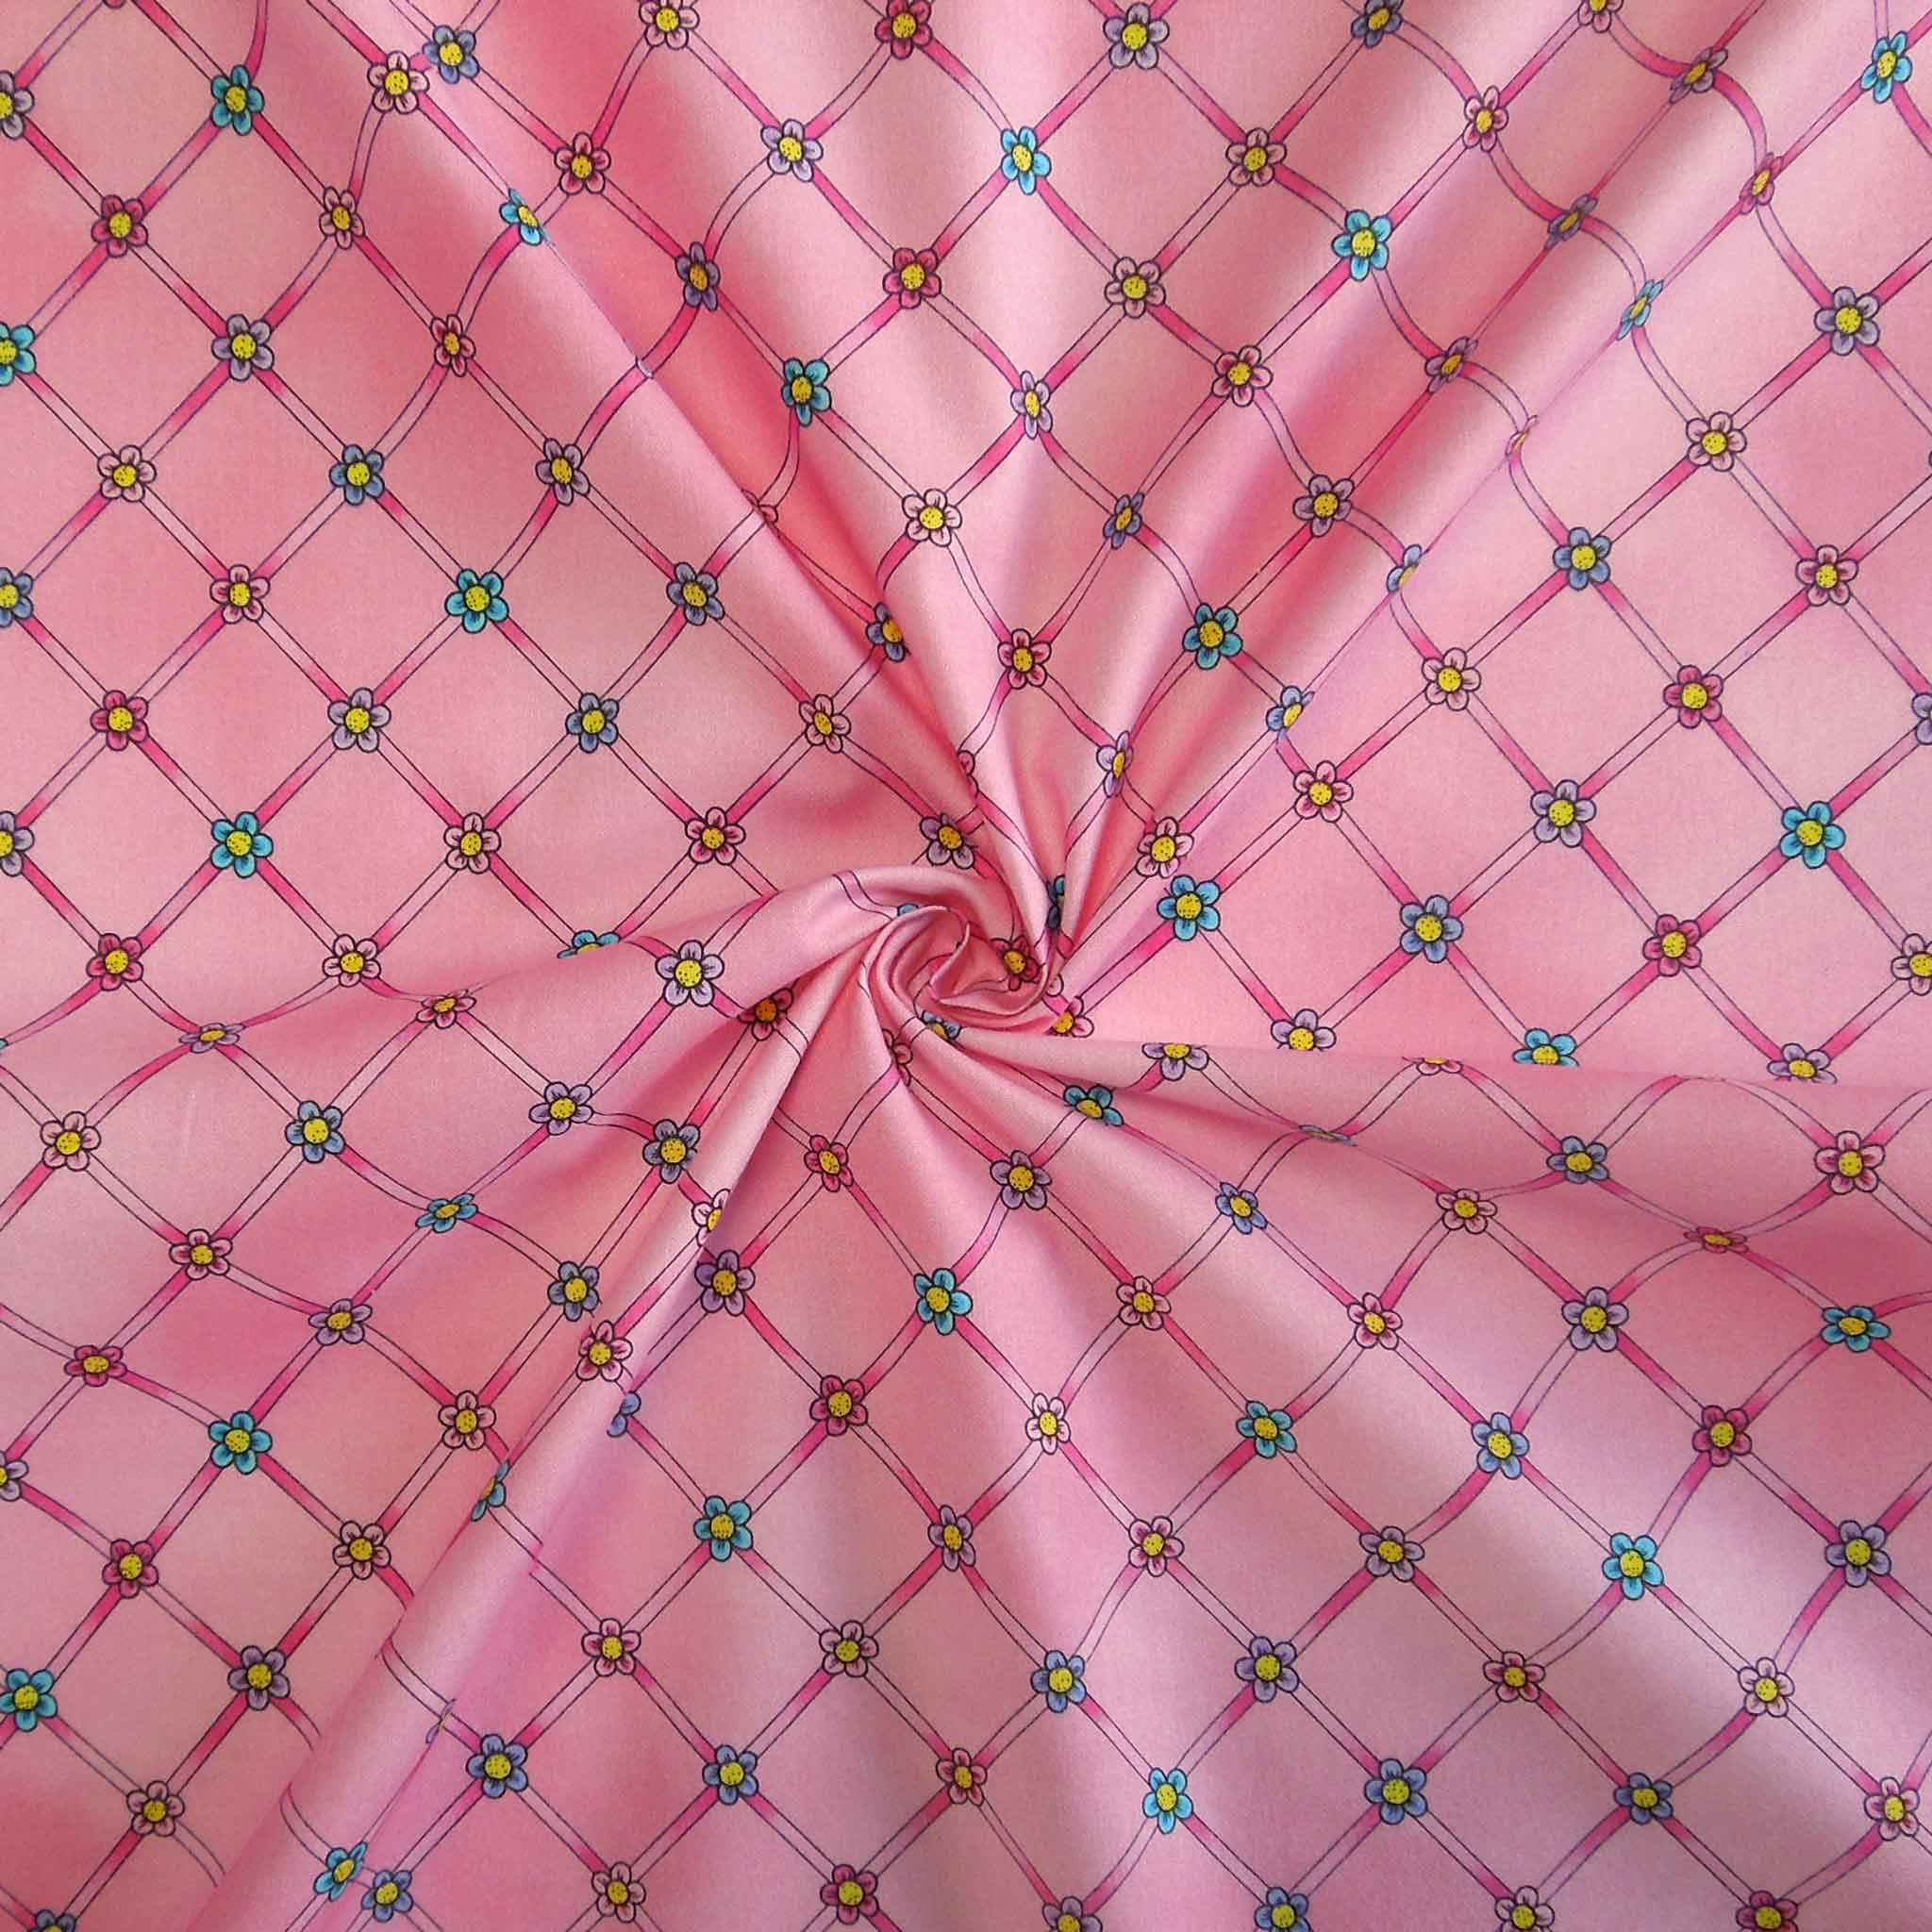 Pink Flower Cotton Fabric by Timeless Treasures 2091/P, At The Ballet Collection, Pink Flower Trellis Fabric - Fabric and Ribbon